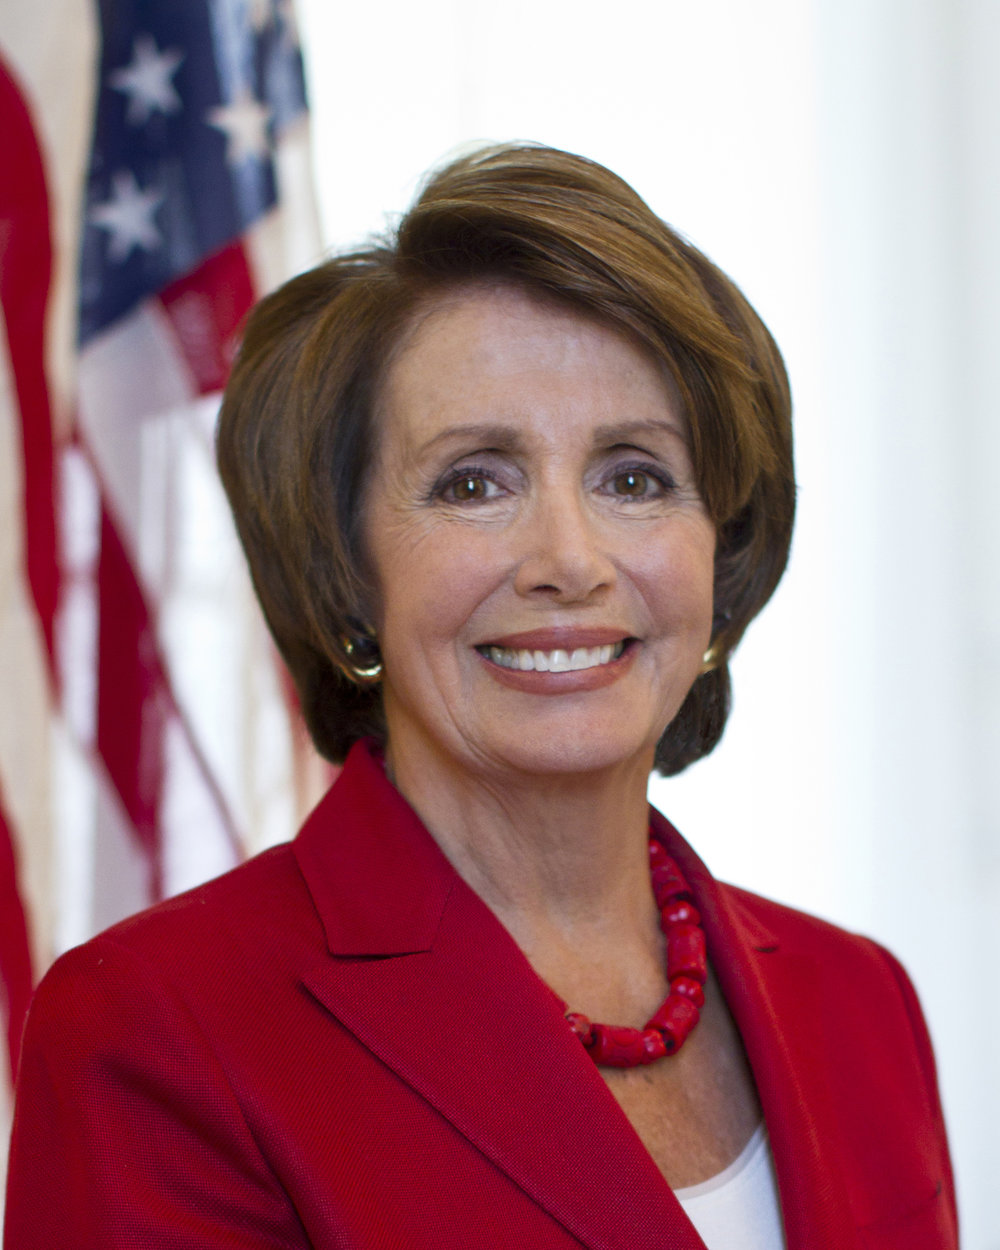 Pelosi-High-Res.jpg